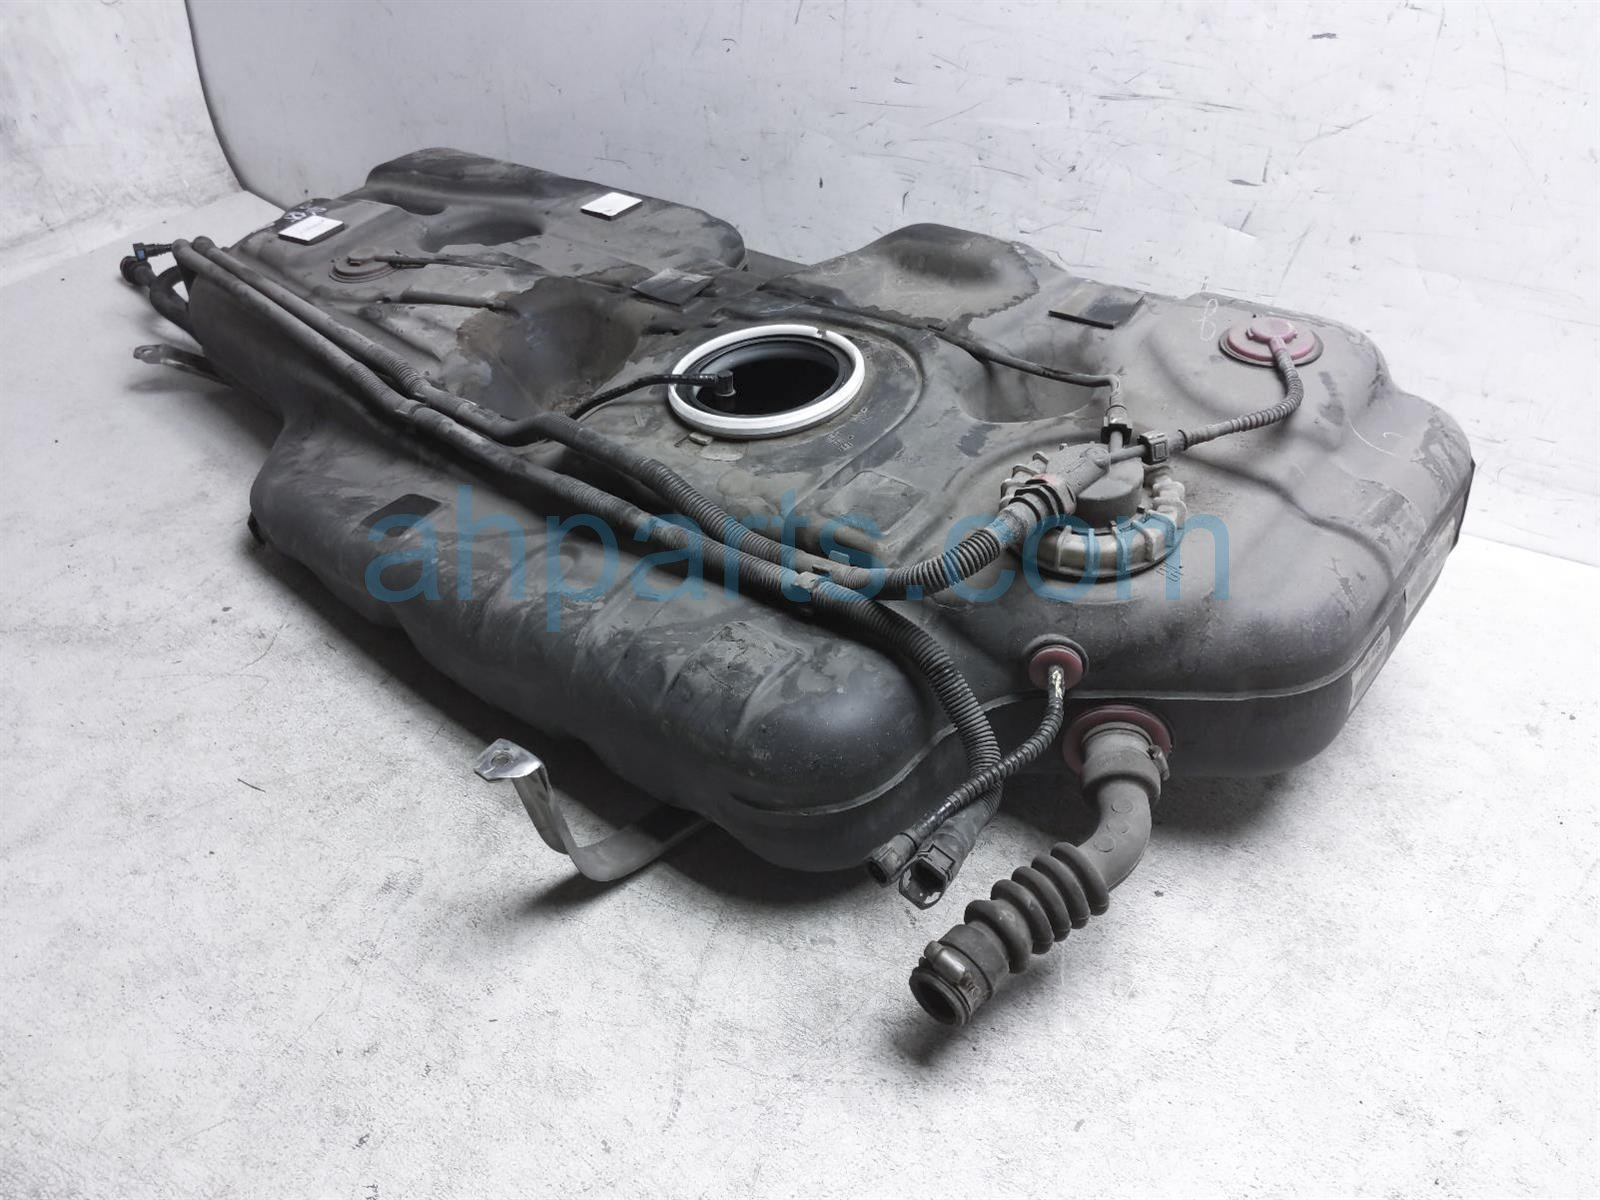 2013 Toyota Sienna Gas / Fuel Tank 77001 08080 Replacement